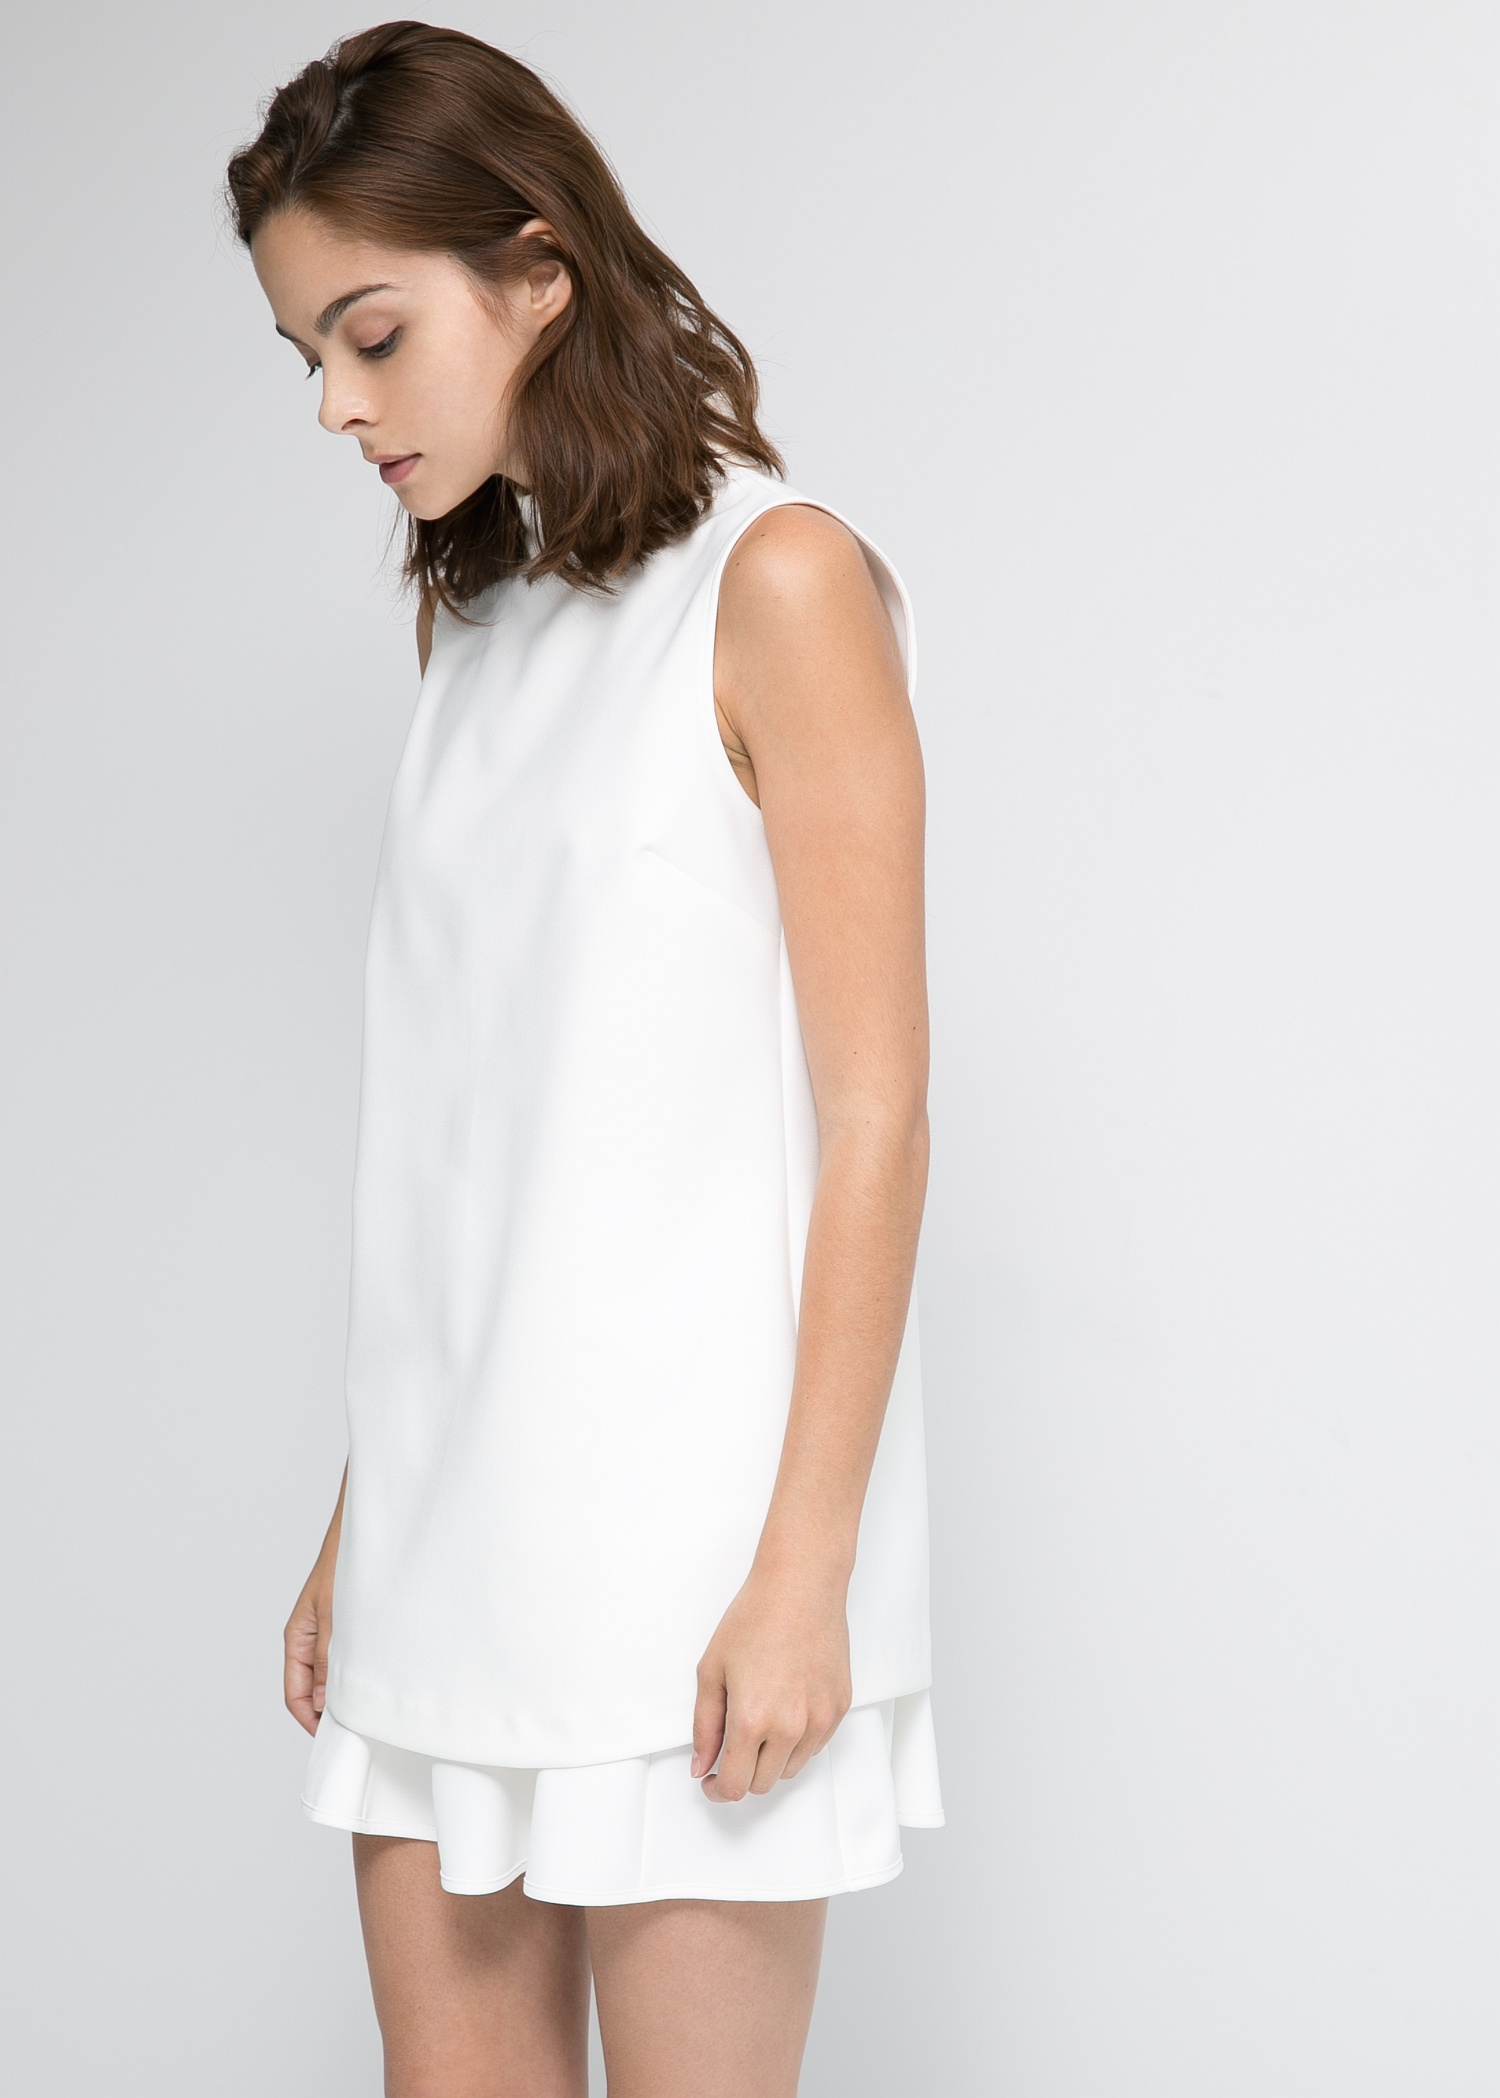 Stretch top - T-shirts and tops for Women | MANGO